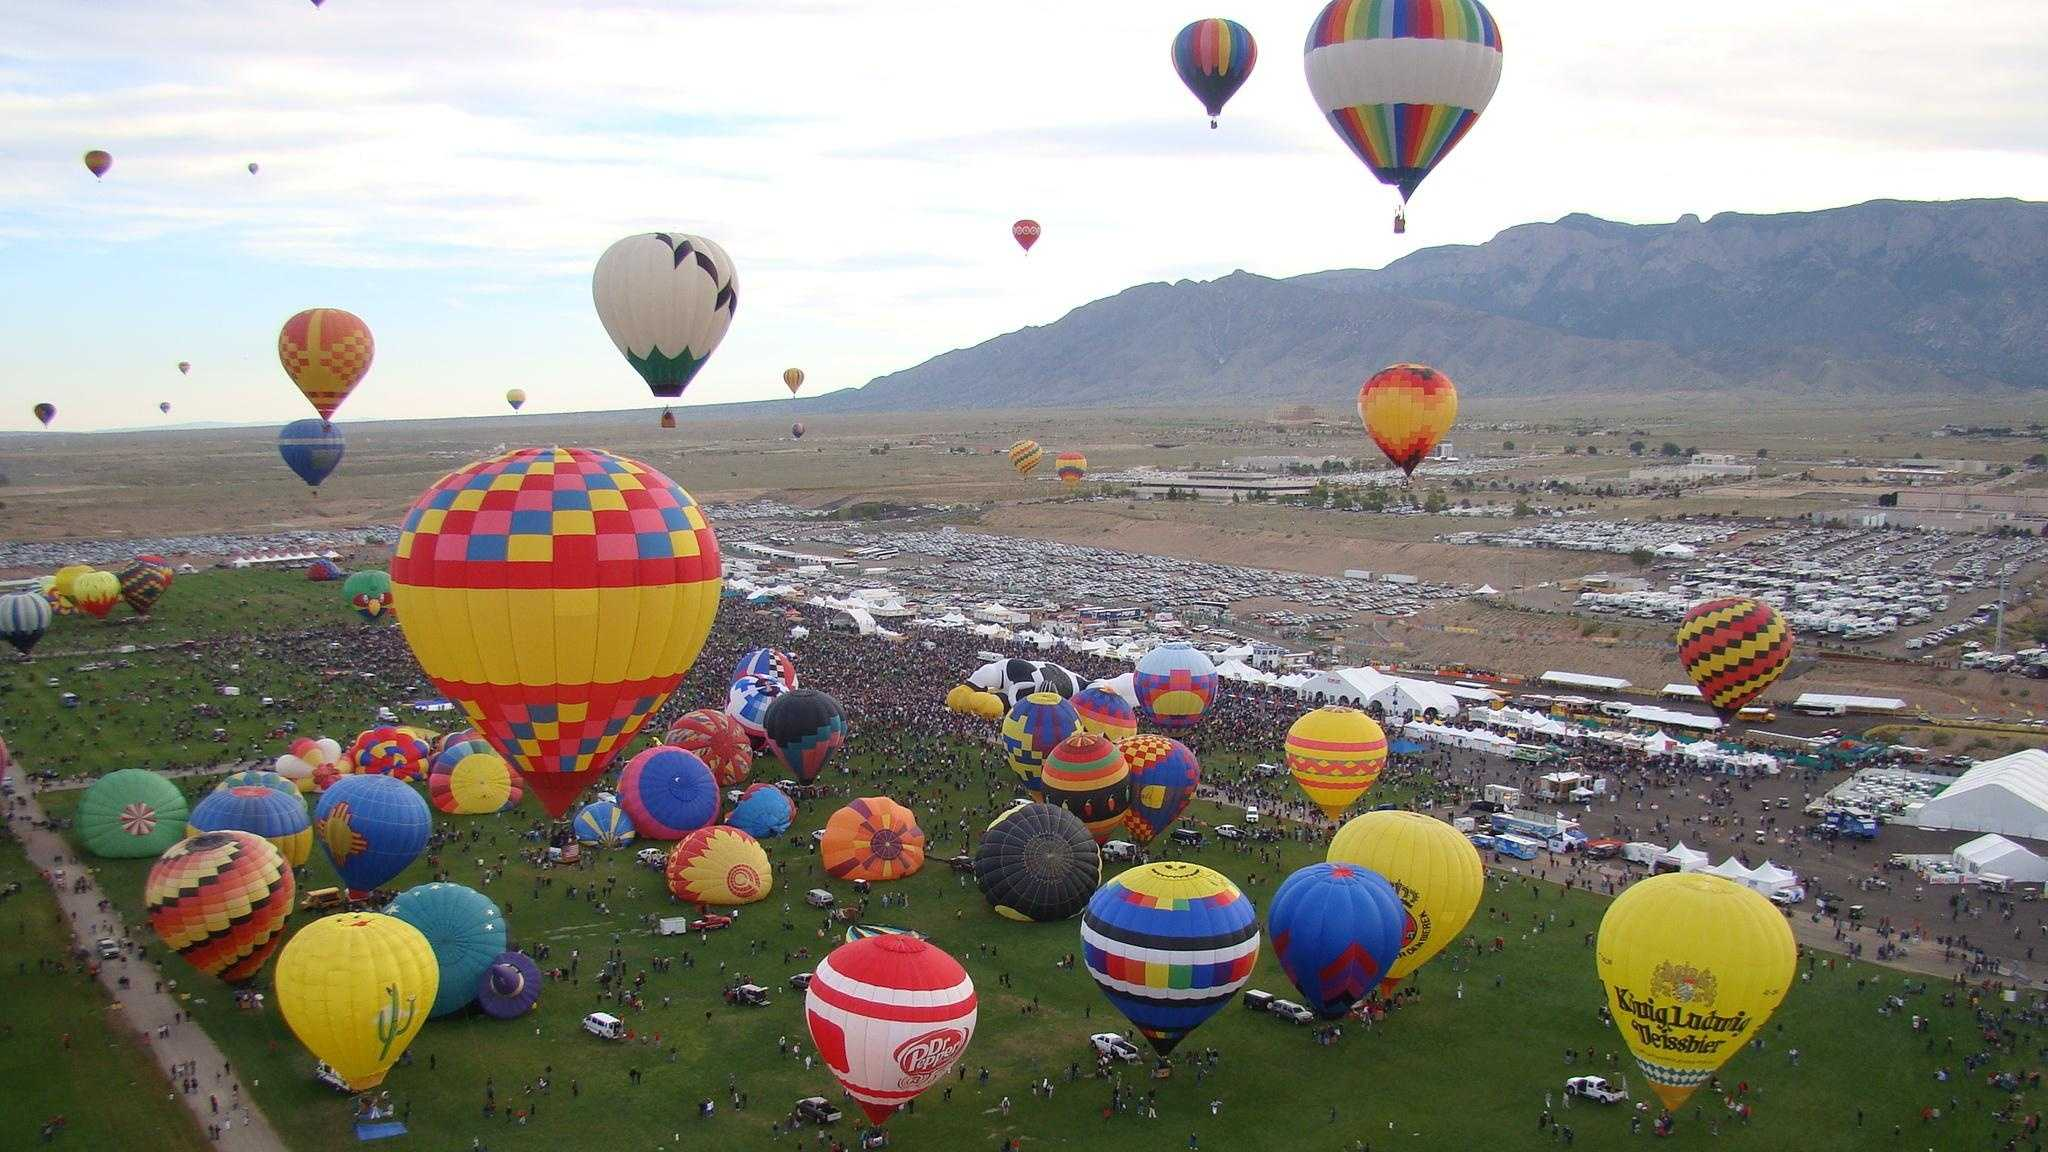 Balloon Fiesta Generic Ulocal - 29161011